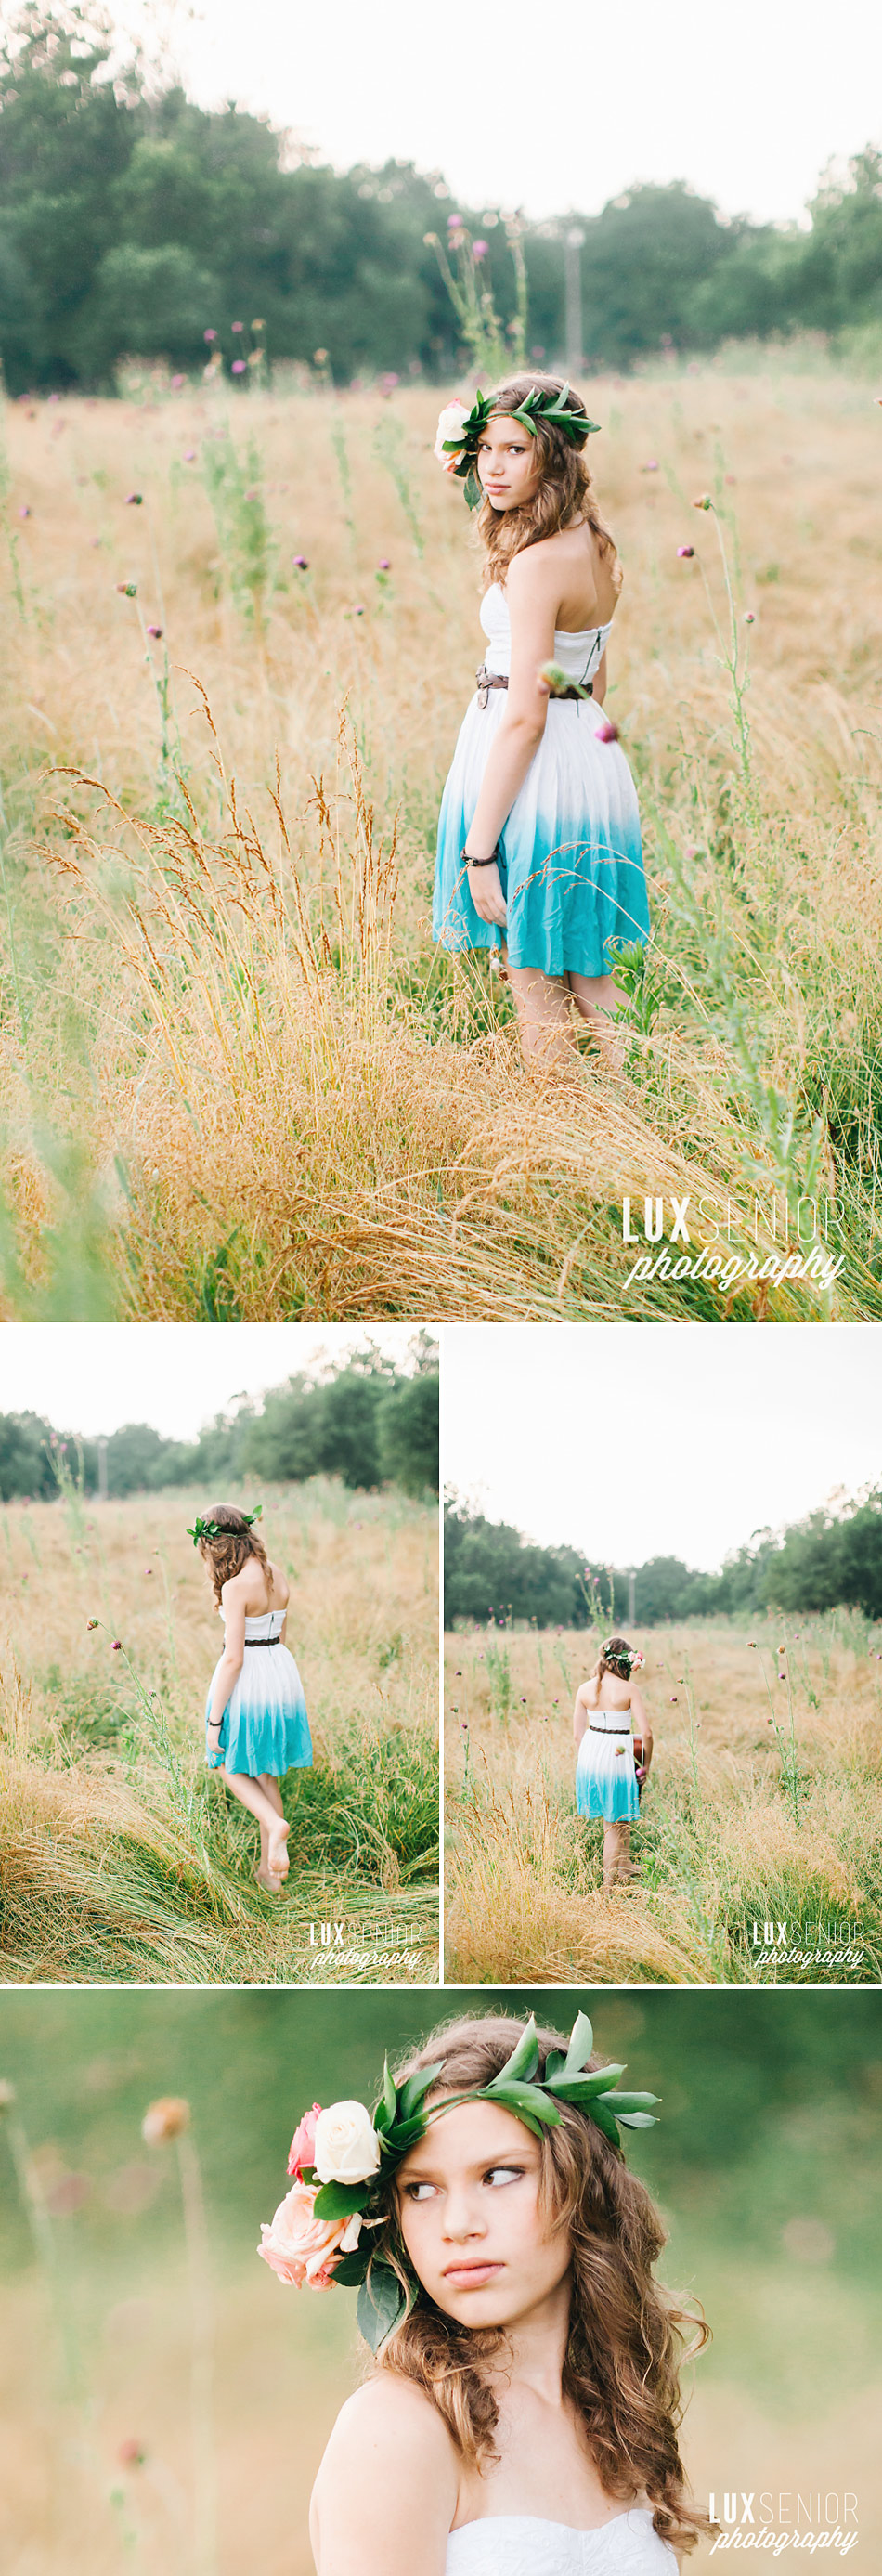 DaytonOhioSeniorPhotographer-styledsession-6.jpg